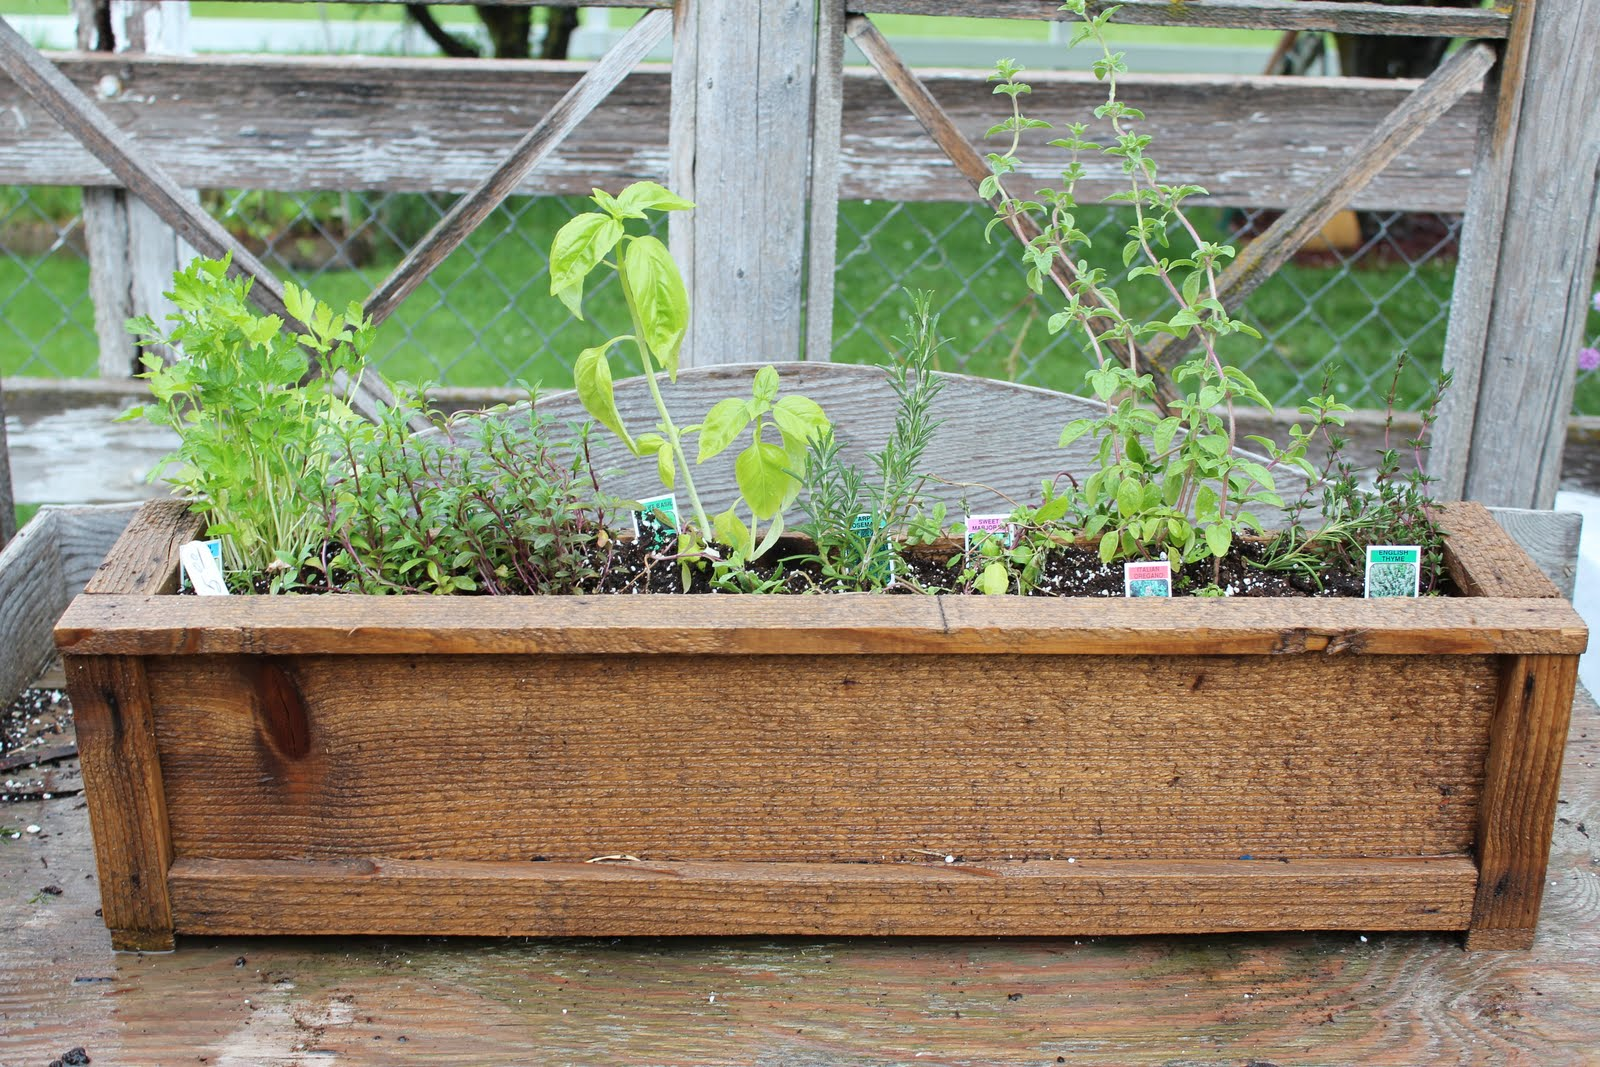 You Can Order Your Patio Herb Garden Today By Calling Tonya (801)318 3431  Or Shelley (801)318 4657. Orders Available Only While Supplies Last.